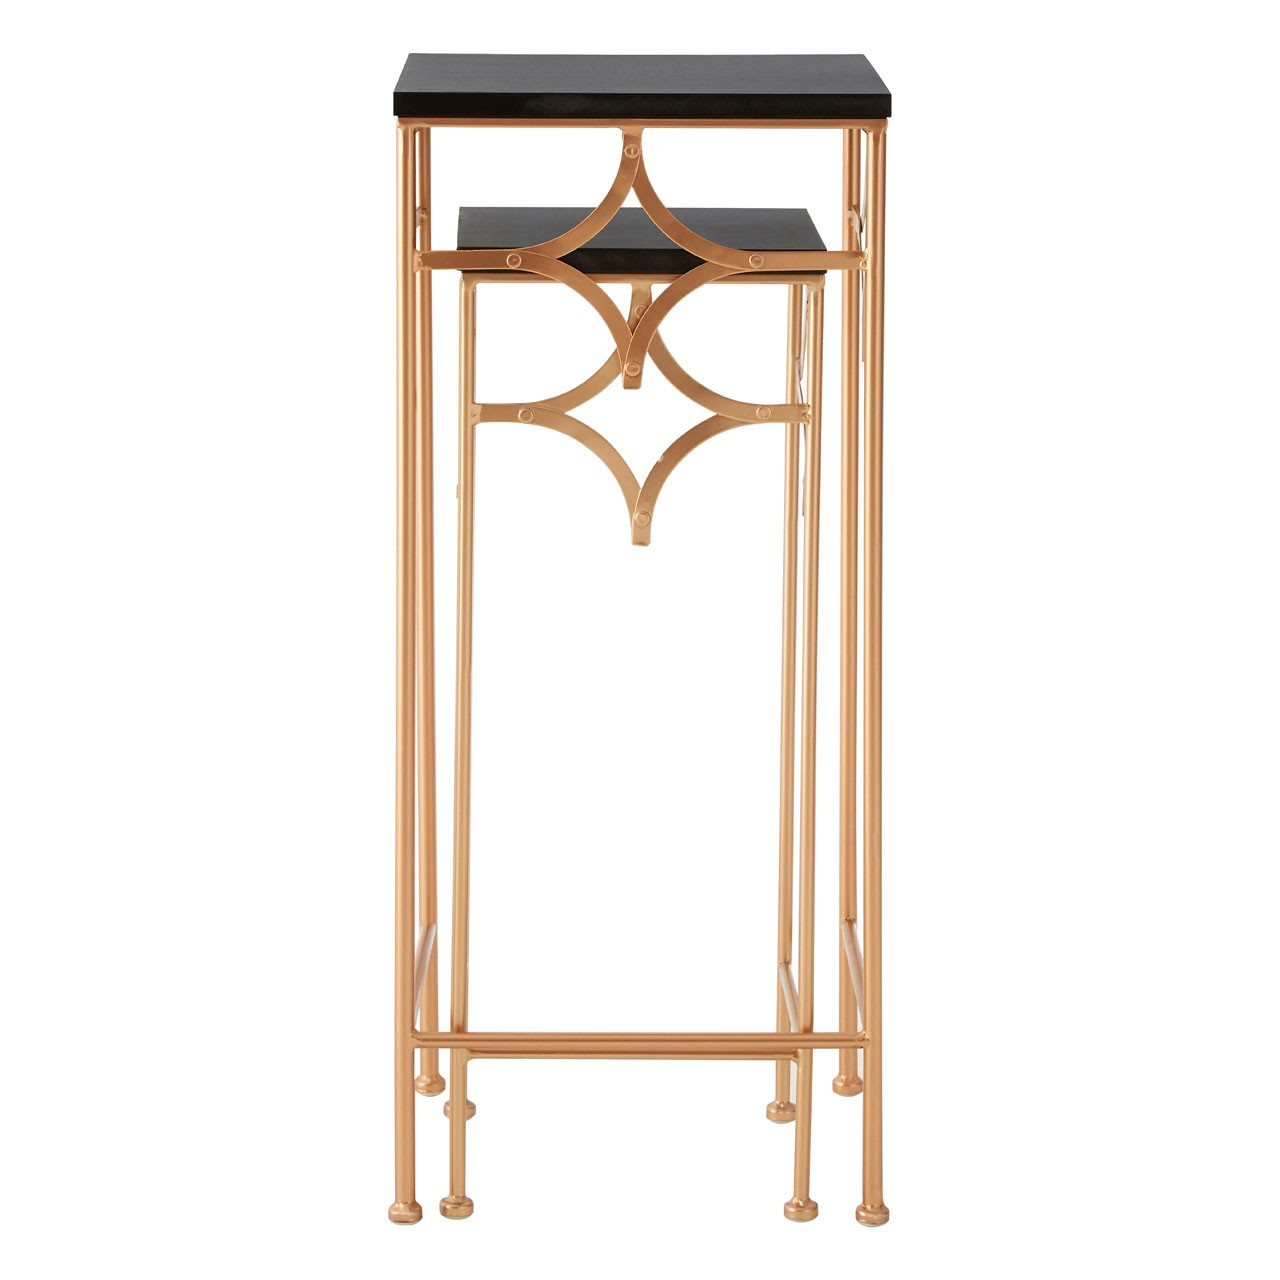 Prime Furnishing Lexa Plant Stands - Gold - Set Of 2